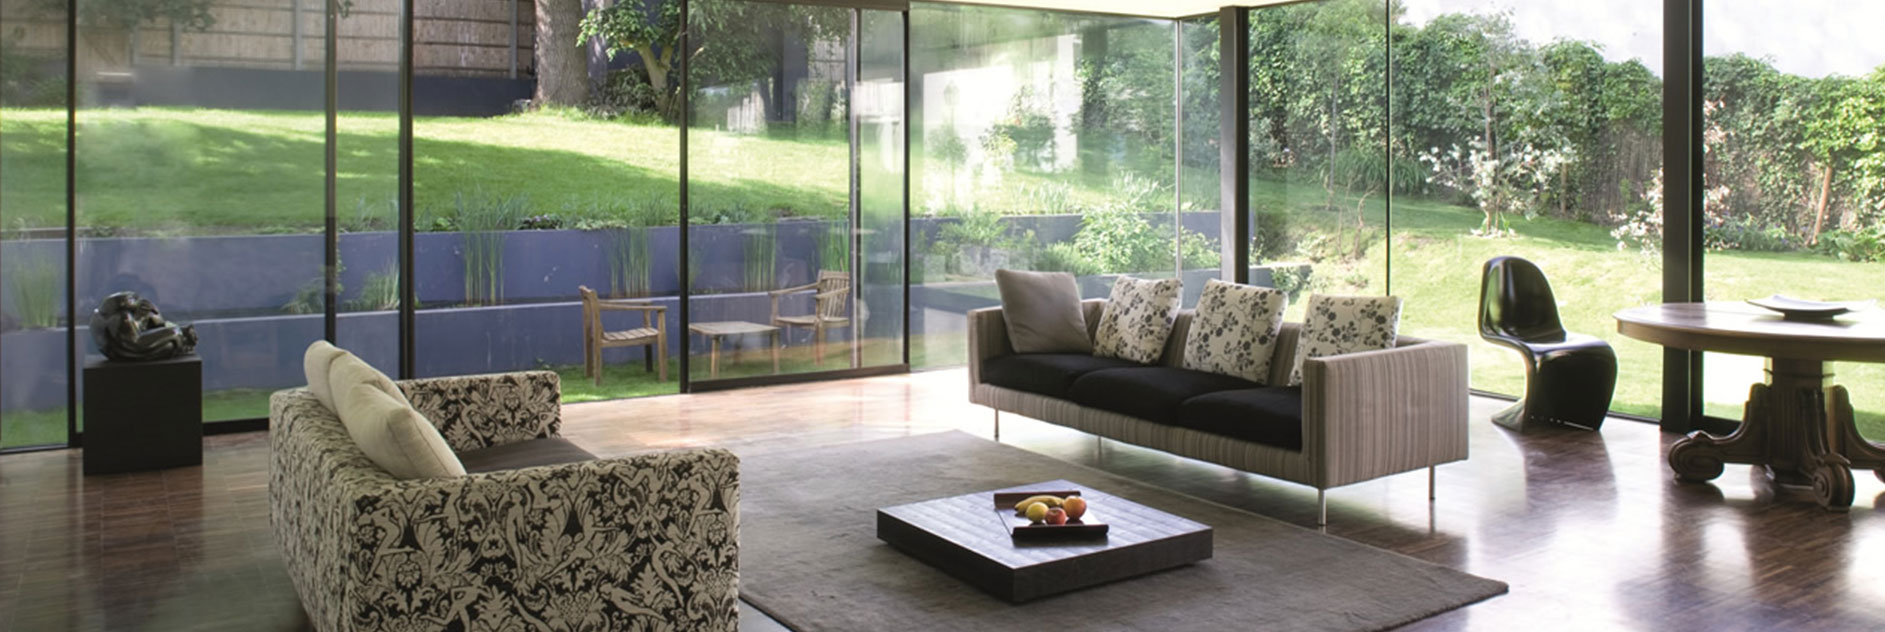 residential home glass